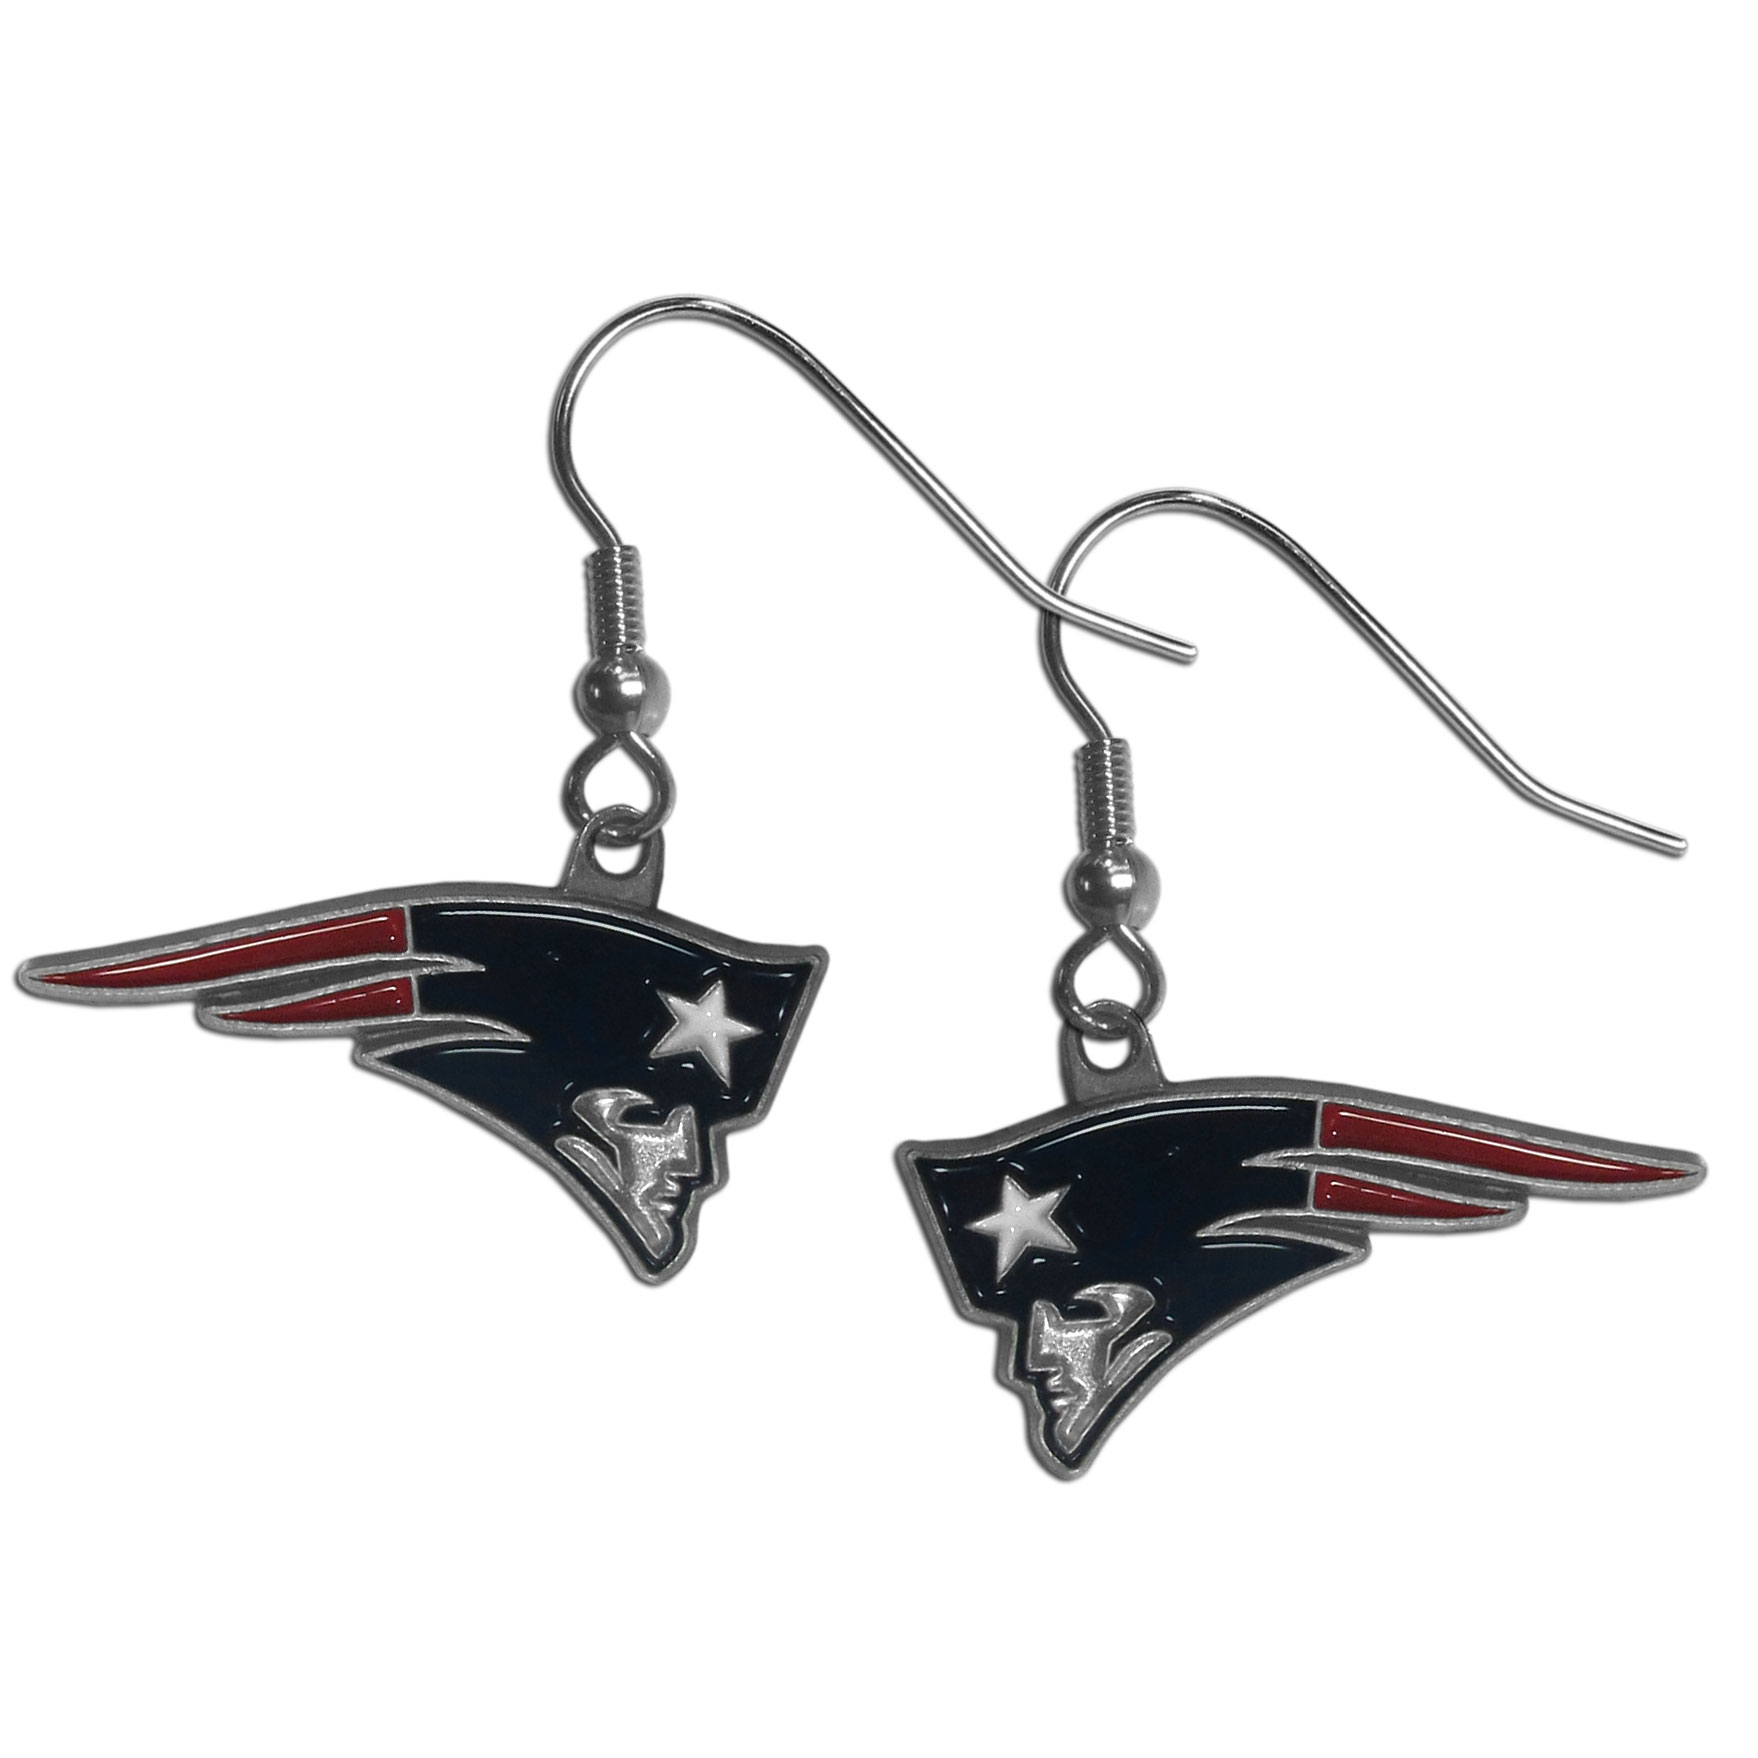 New England Patriots Dangle Earrings - Every woman has her favorite pair of earrings. Why not make our most popular earrings every woman's favorite earrings. Our officially licensed New England Patriots zinc dangle earrings are beautifully detailed with hand colored enamel team logos that define these classic dangle earrings. They add the perfect touch of spirit to any game day or every day outfit. The earrings have a high polish nickel free chrome finish and hypoallergenic fishhook posts.